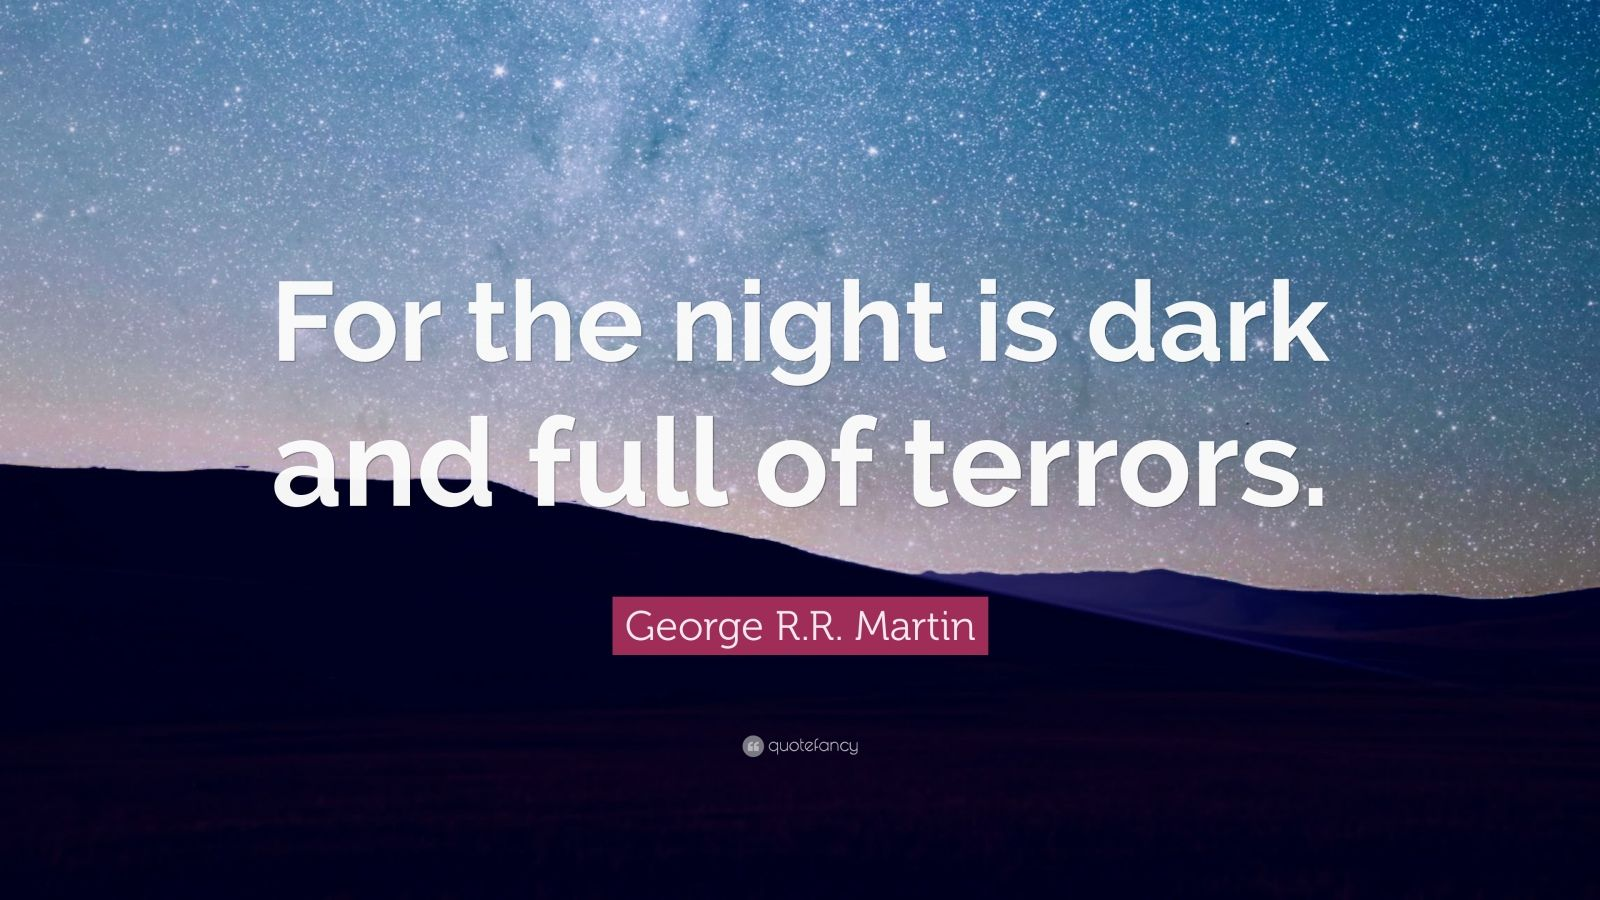 Malcolm X Wallpaper Quotes George R R Martin Quote For The Night Is Dark And Full